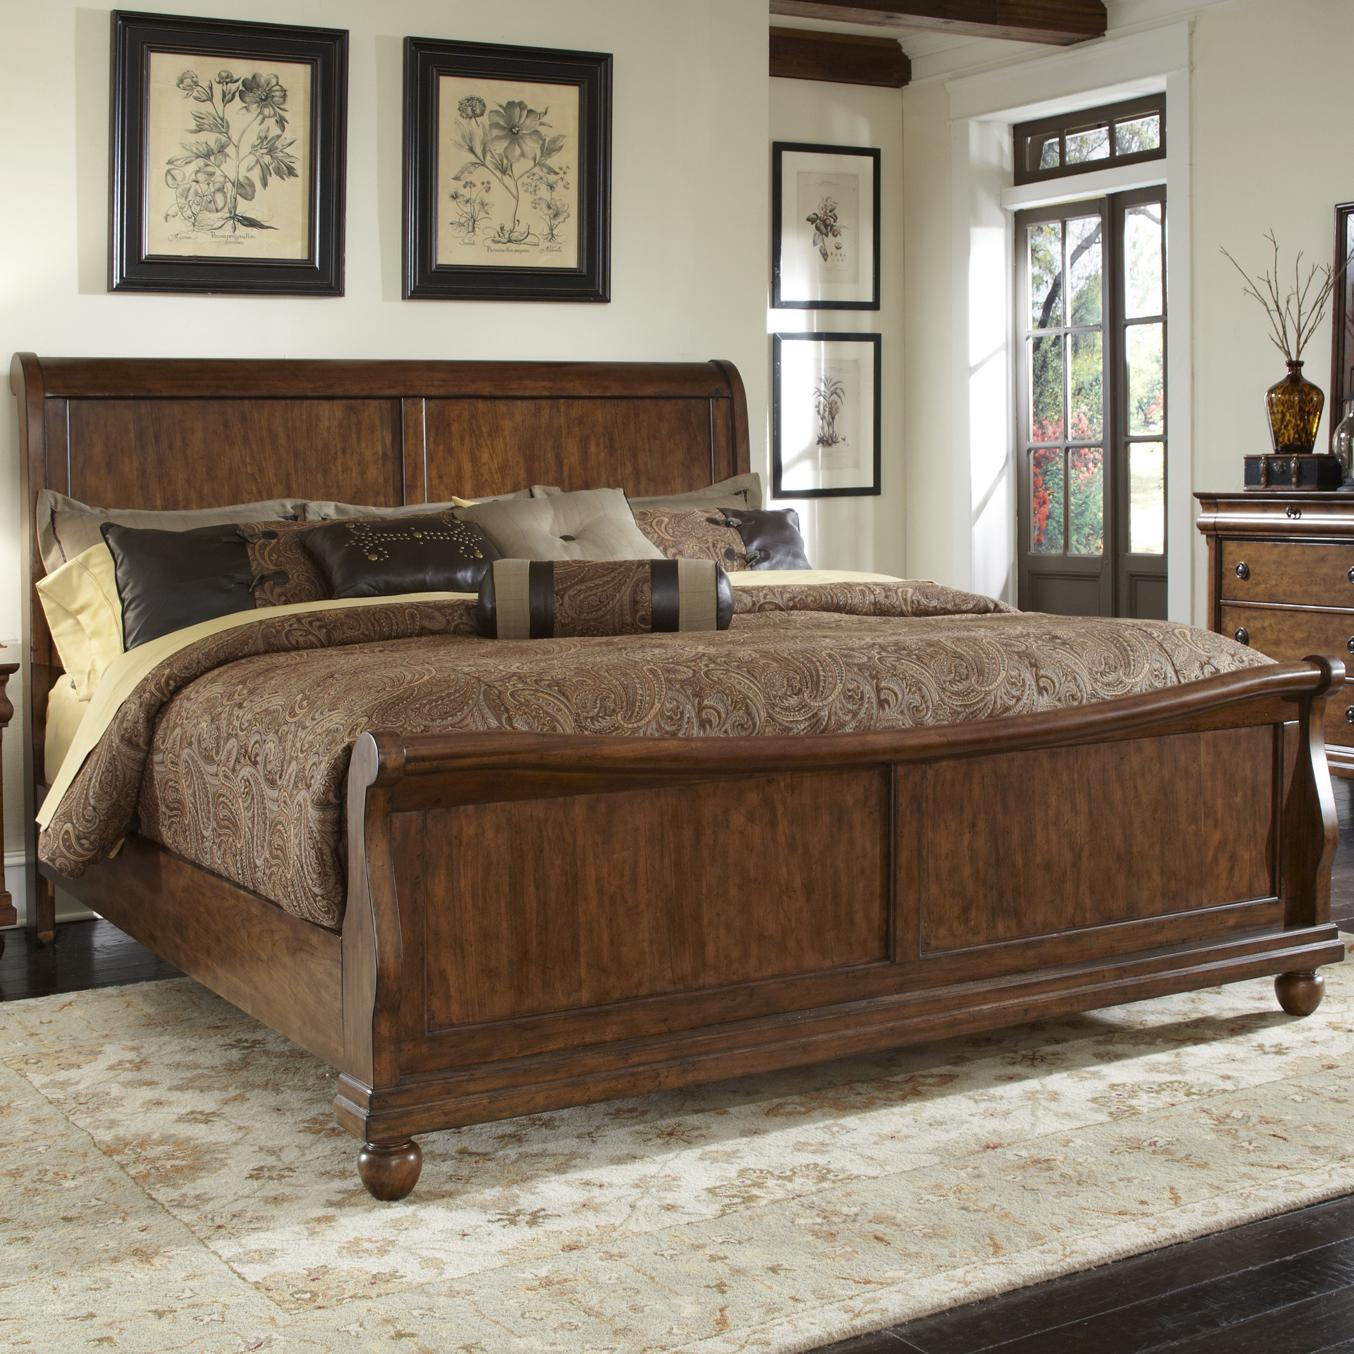 Queen Sleigh Bed Set With Bun Feet By Liberty Furniture Wolf And